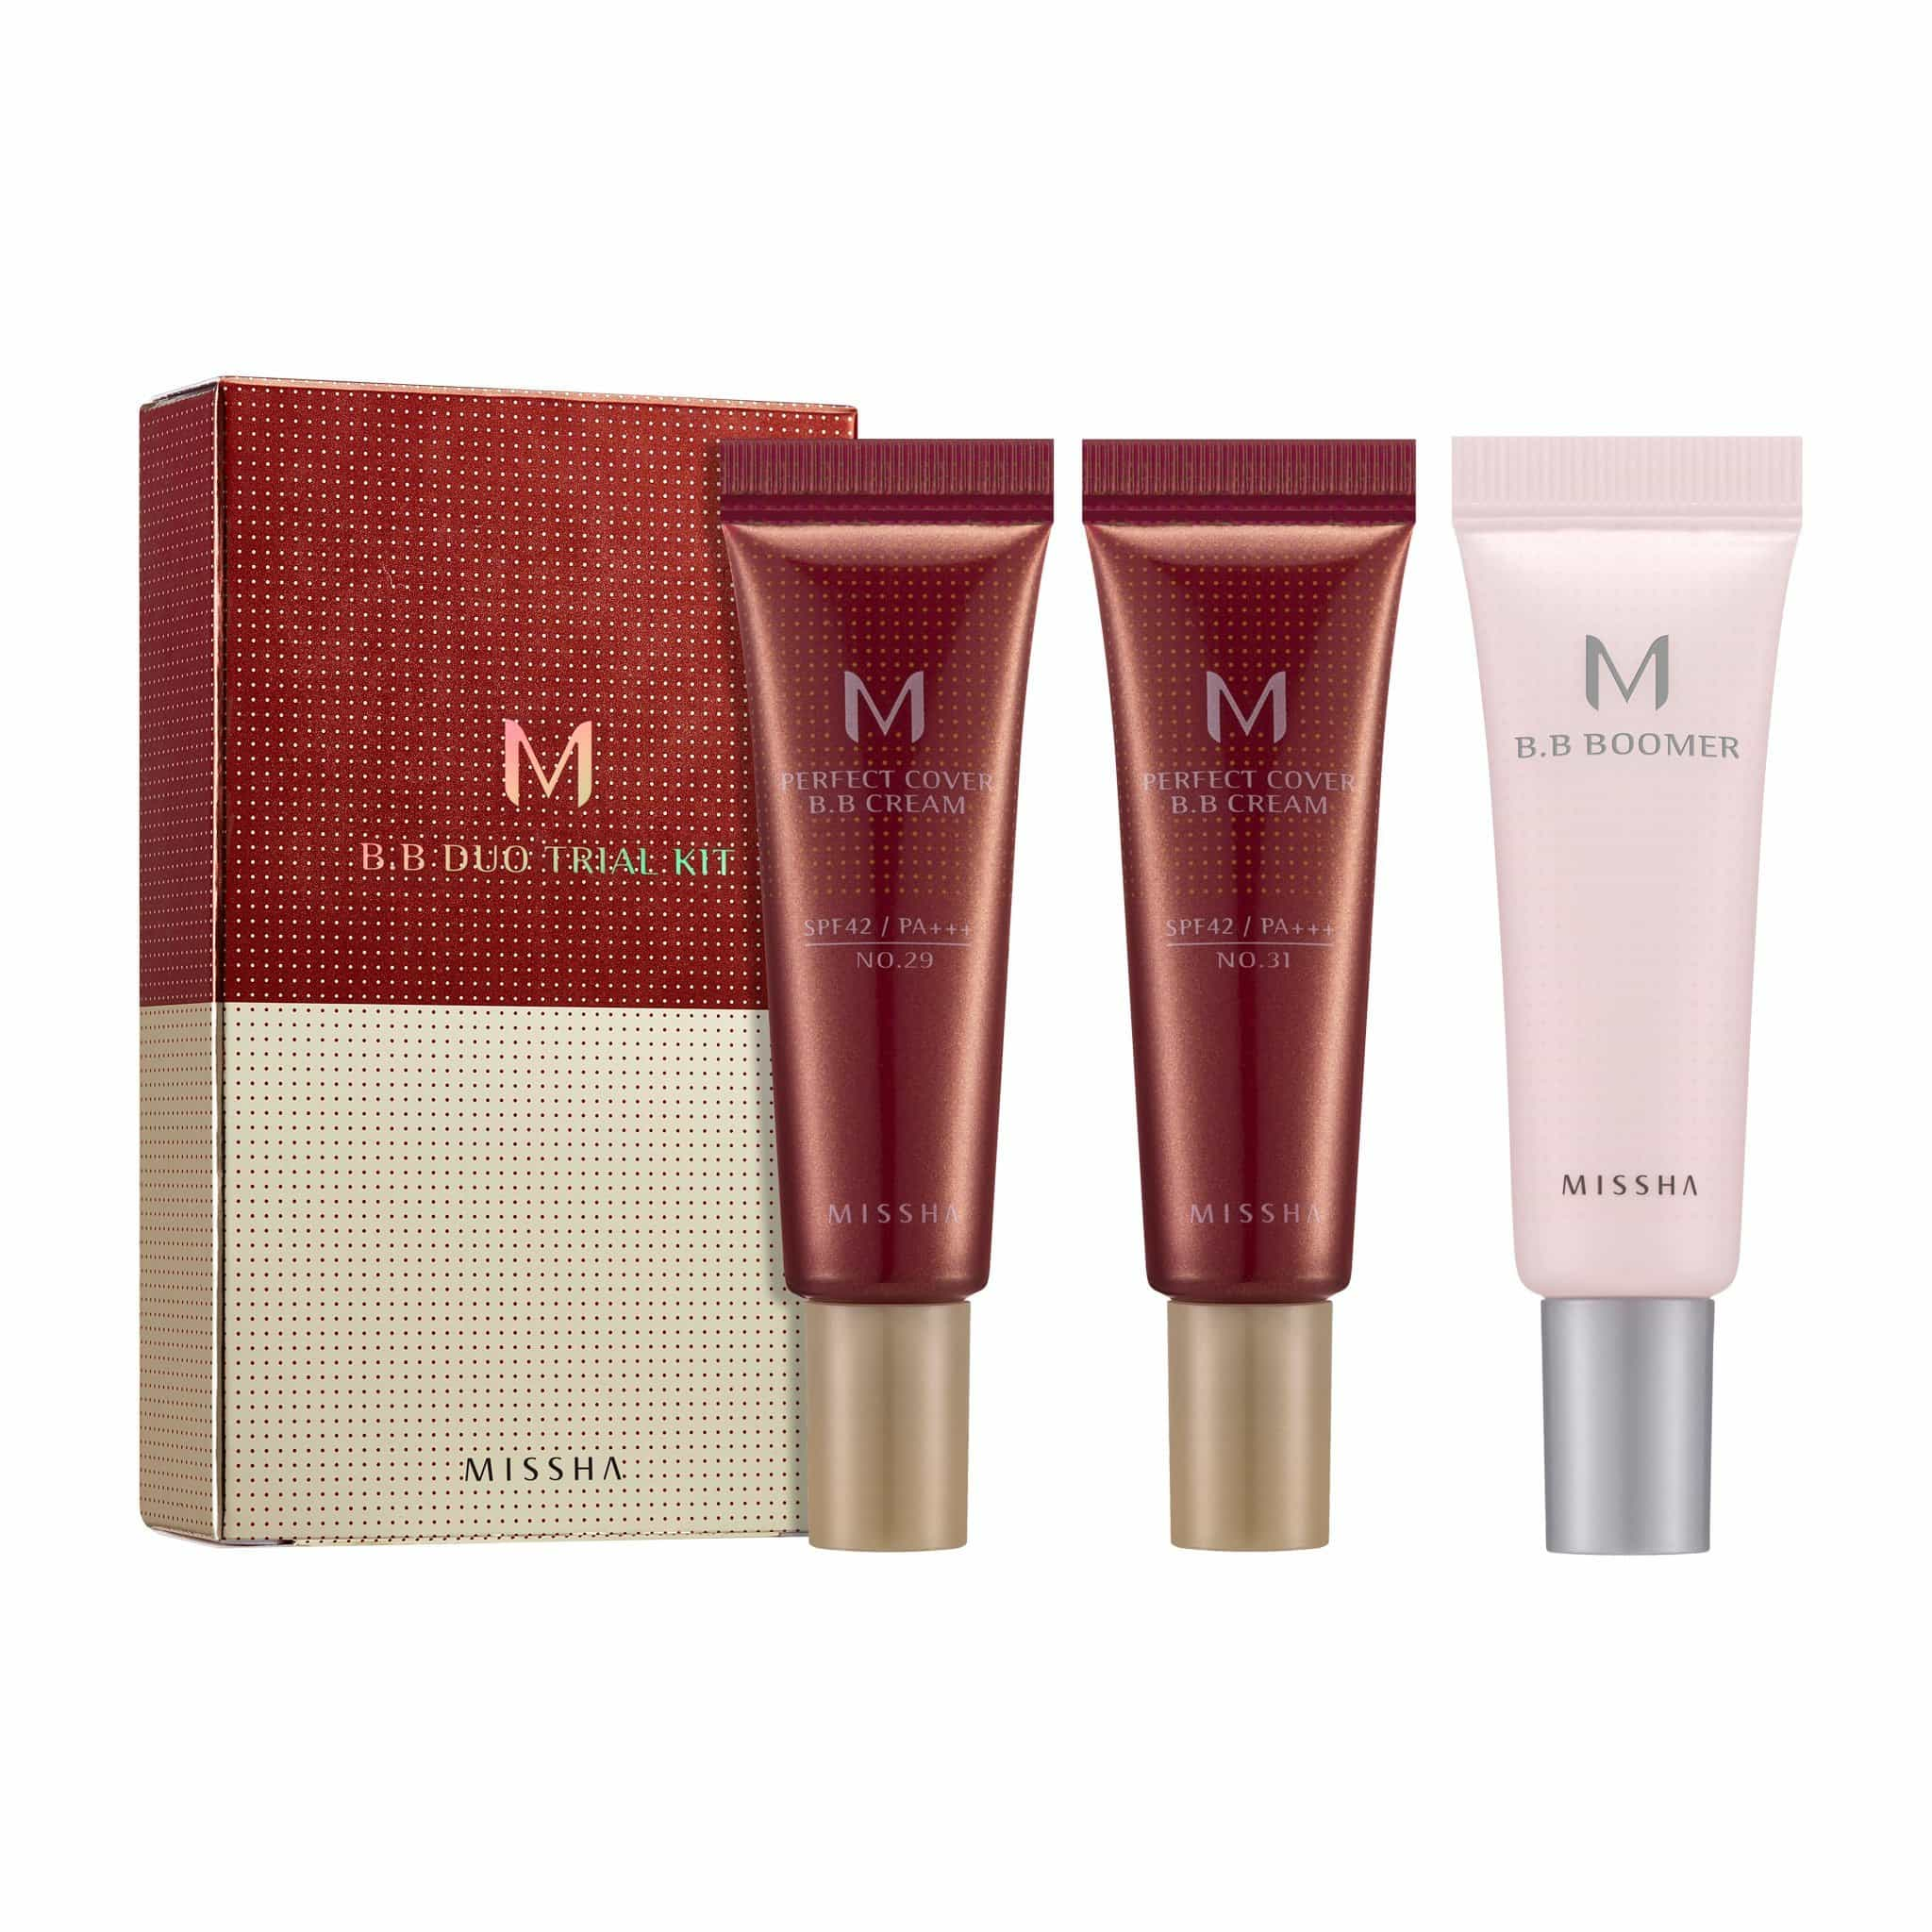 PERFECT COVER BB CREAM TRIAL KIT - MISSHA